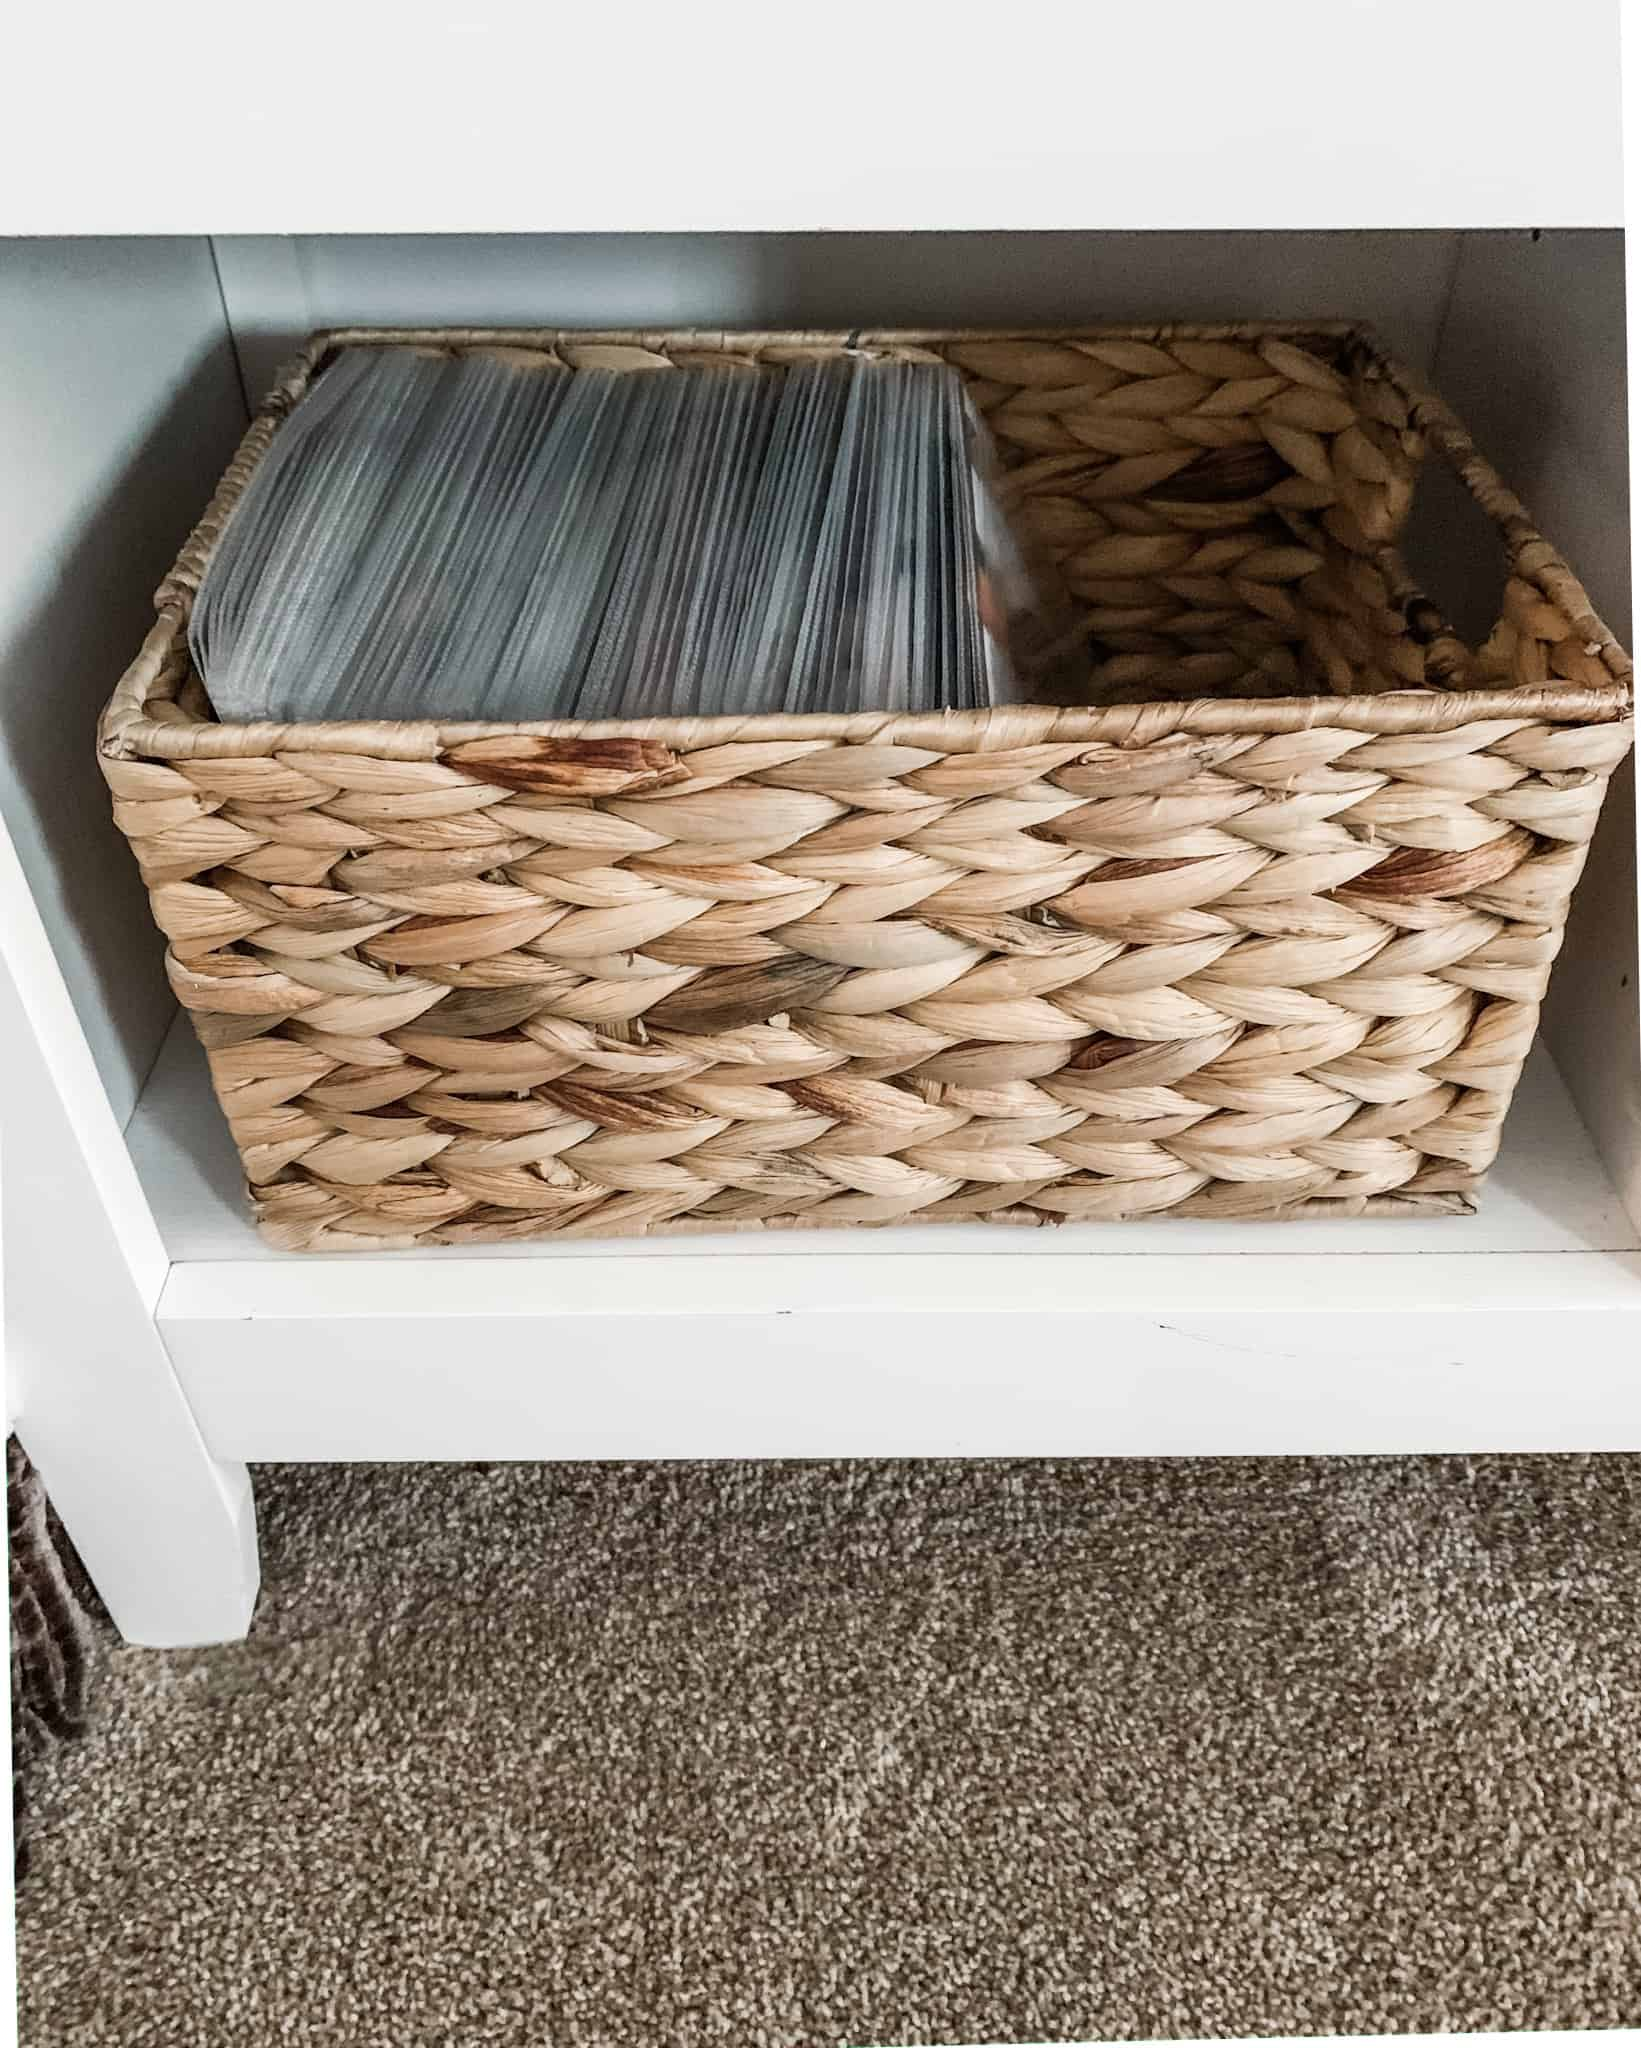 DVDs stored in a basket in sleeves for a DVD storage idea